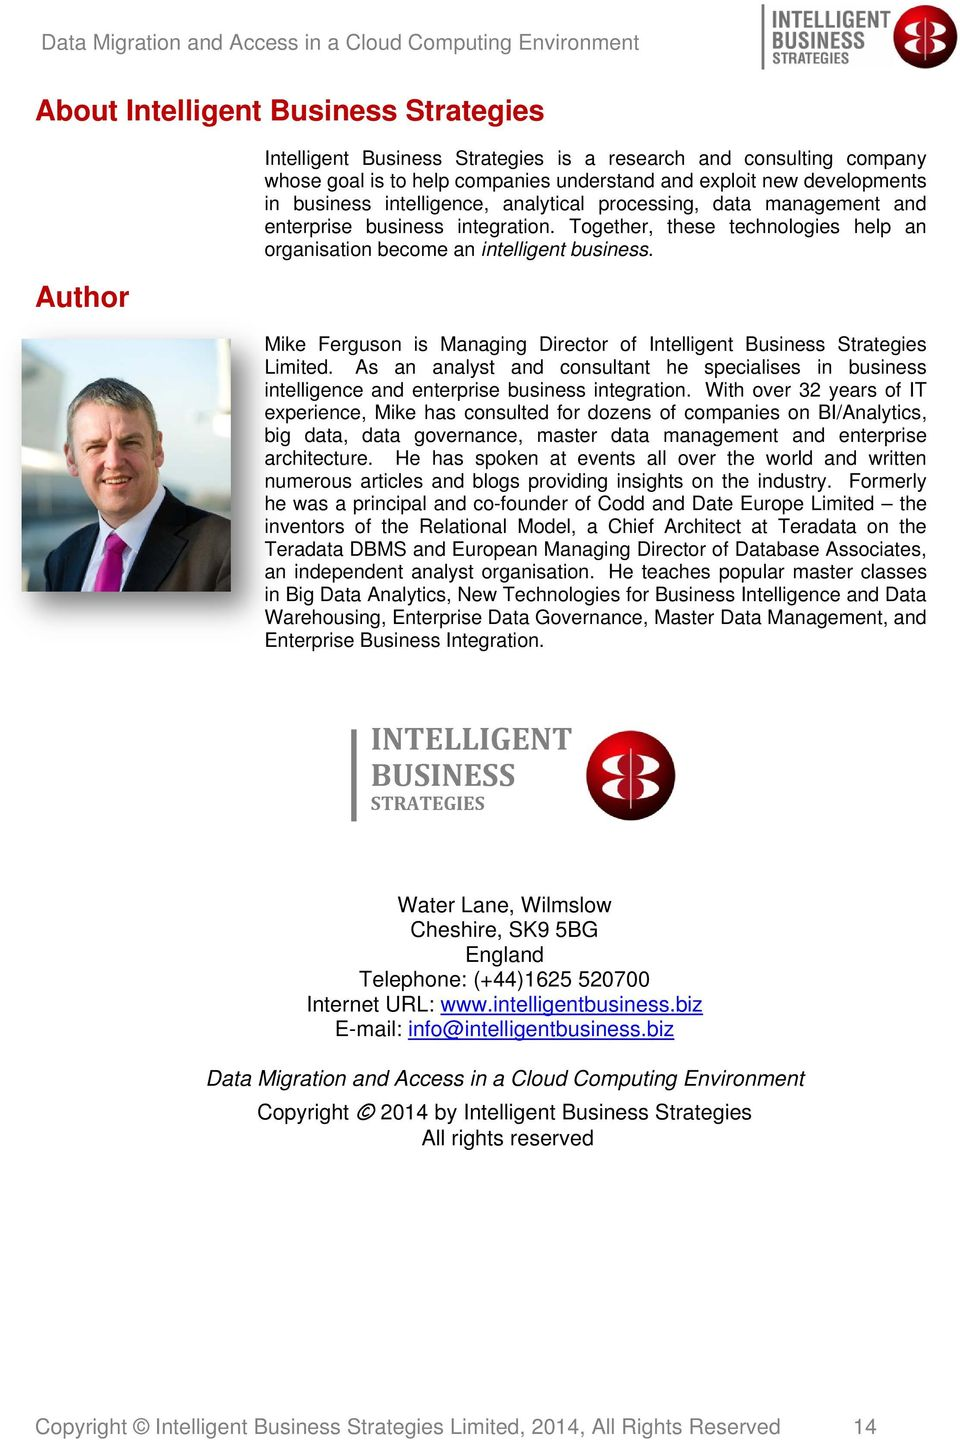 Mike Ferguson is Managing Director of Intelligent Business Strategies Limited. As an analyst and consultant he specialises in business intelligence and enterprise business integration.